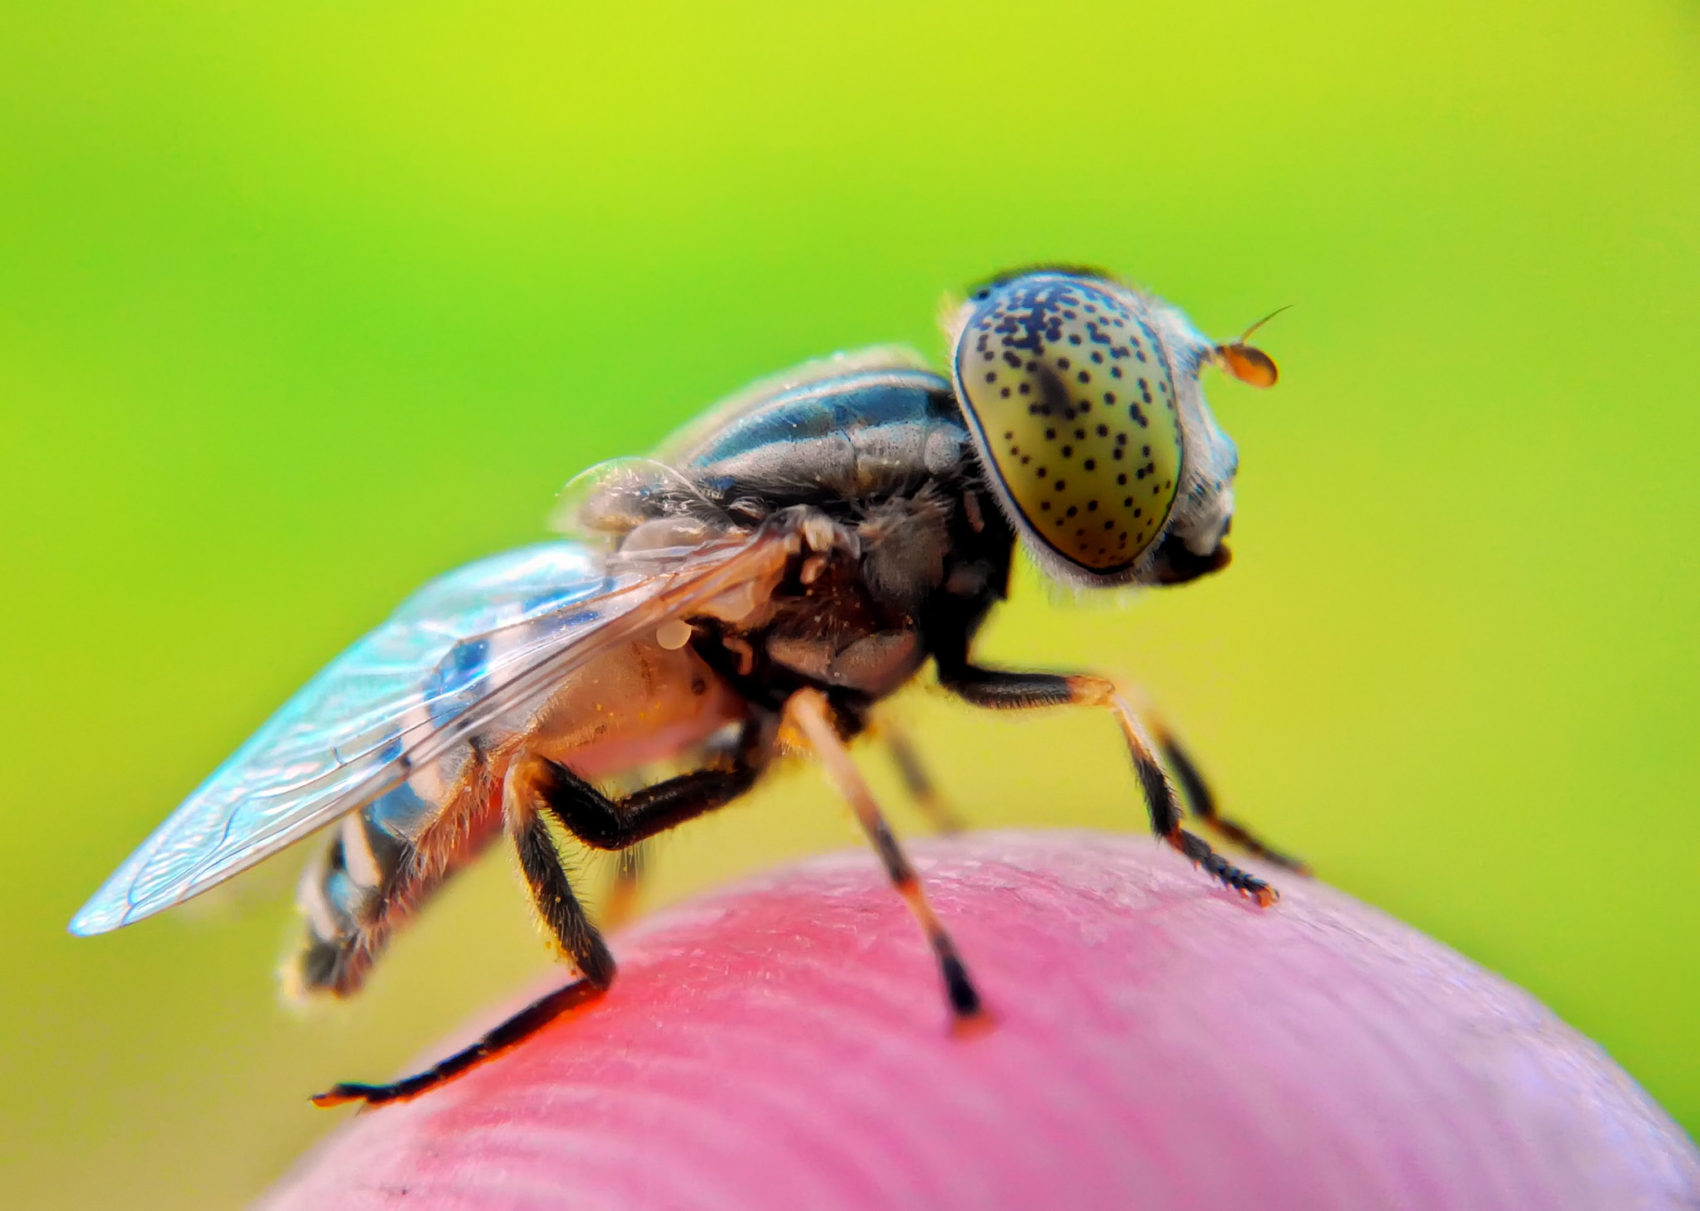 Wonderful Capture Macro Photography of Insect Using Smartphone